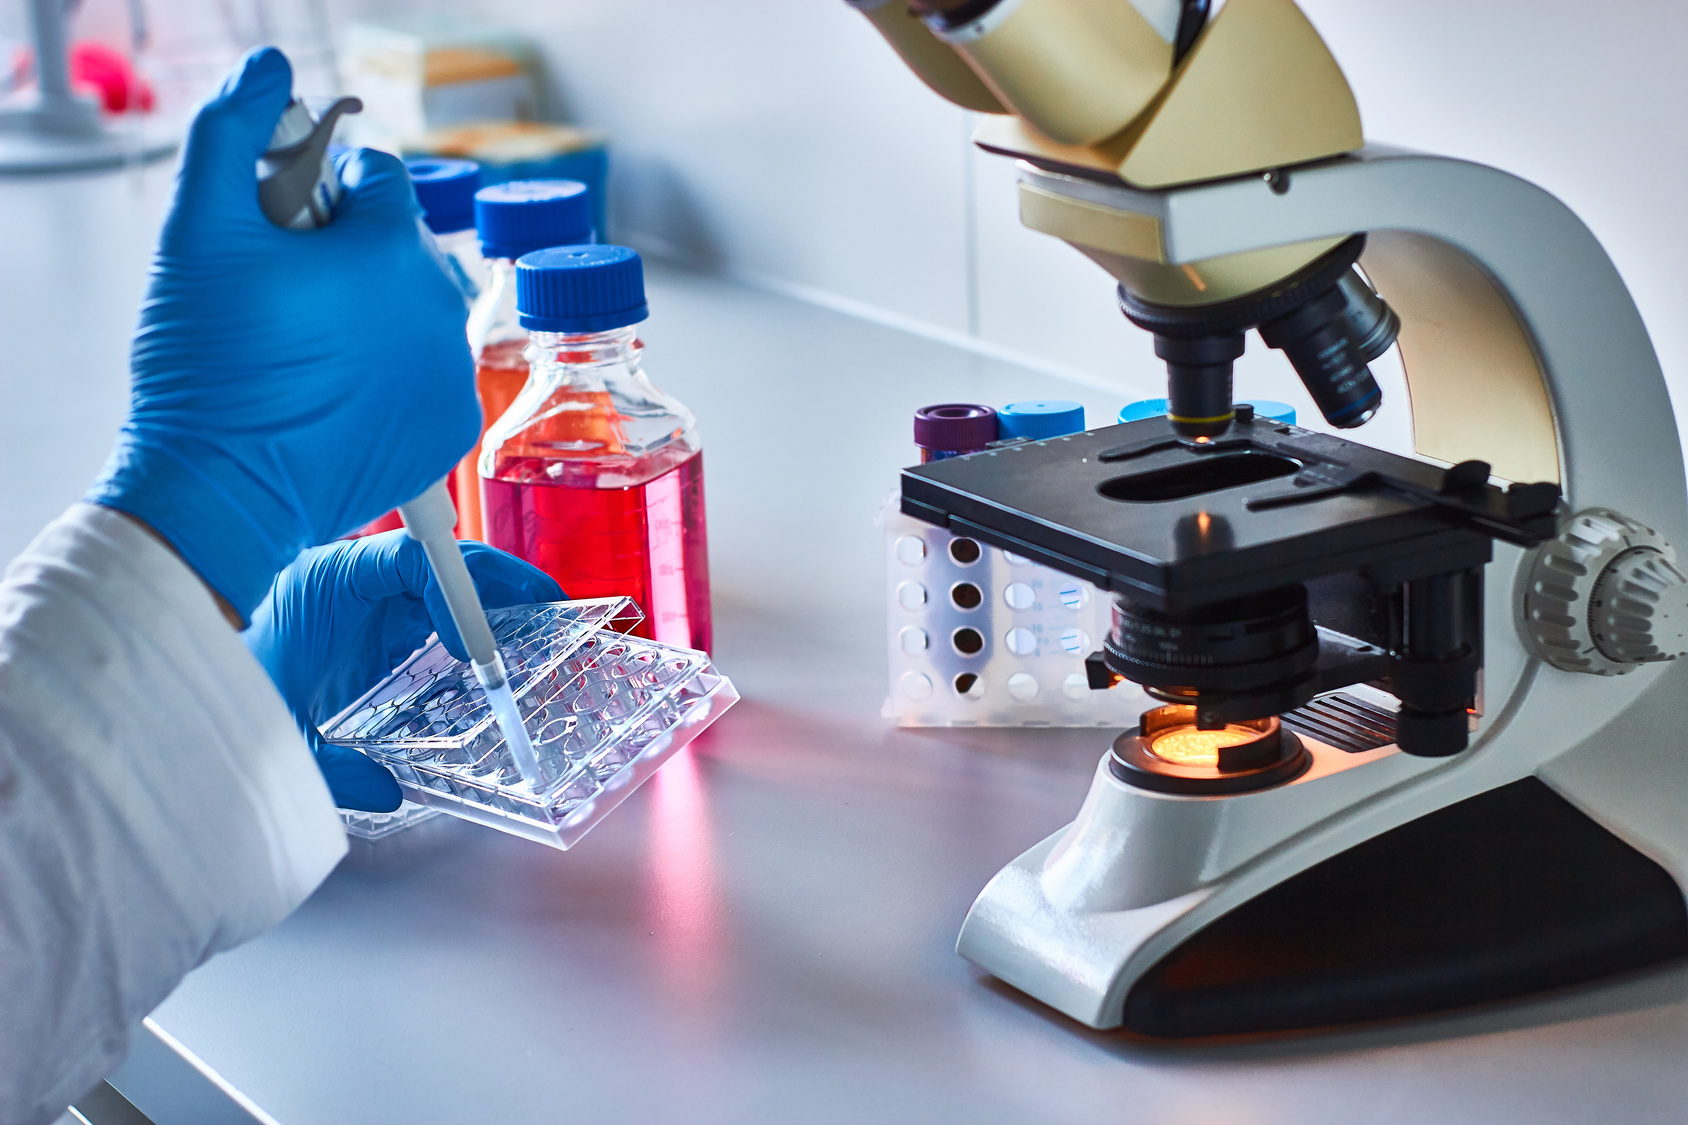 cell culture and microscope